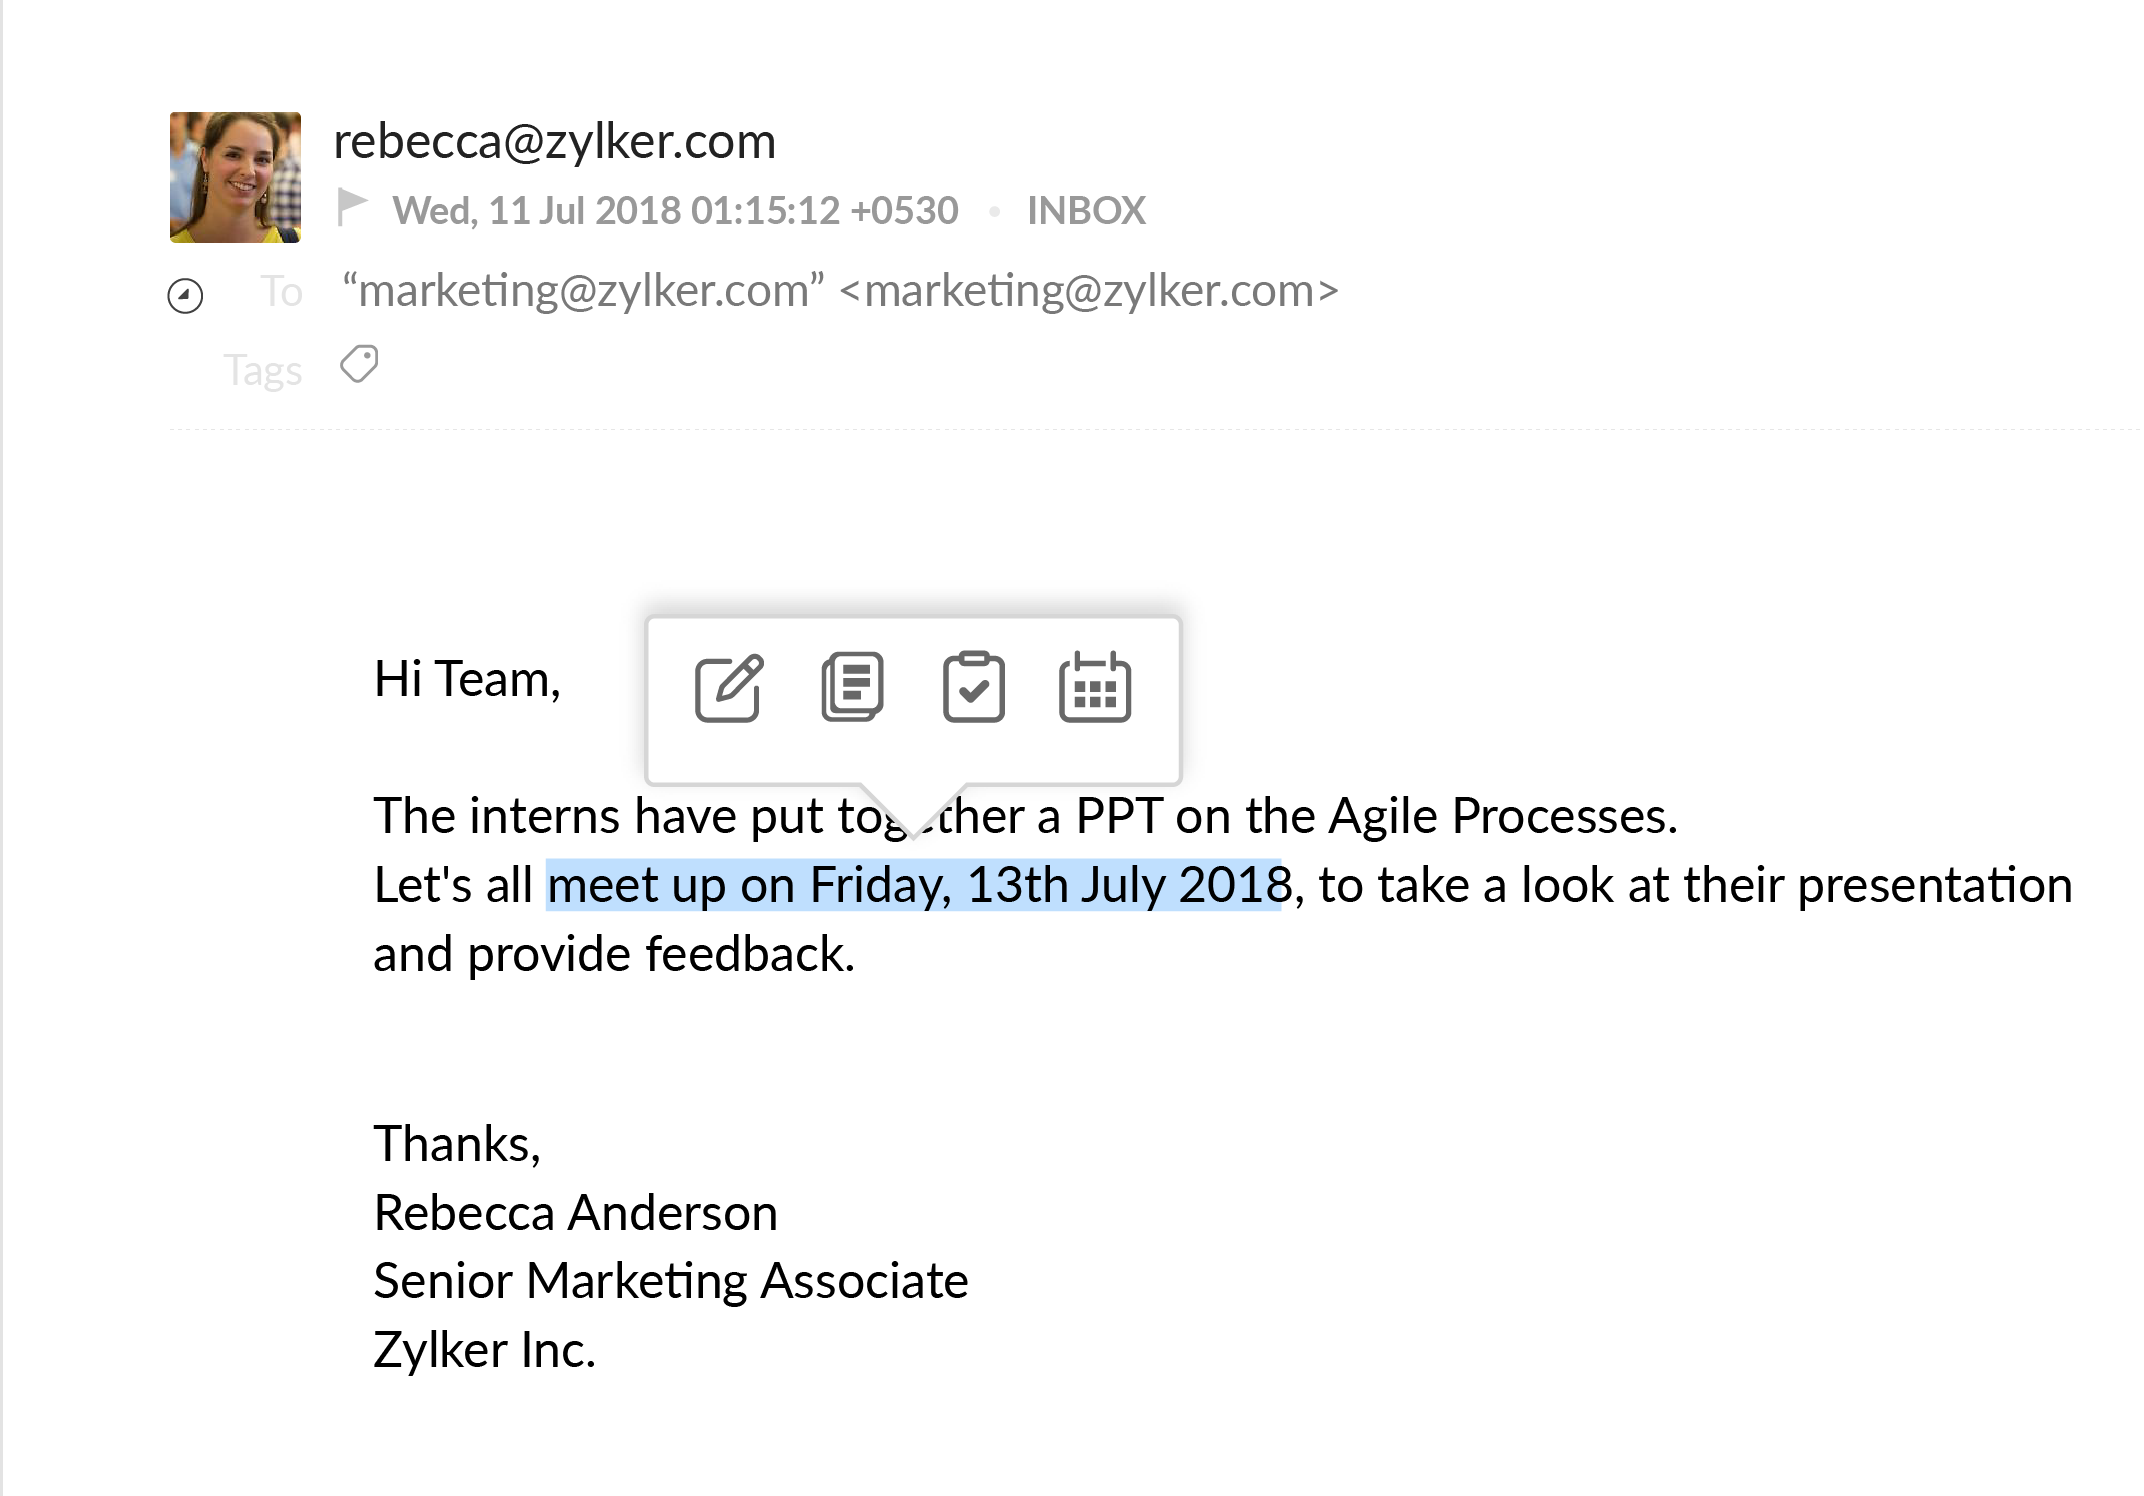 Mail integration with Calendar